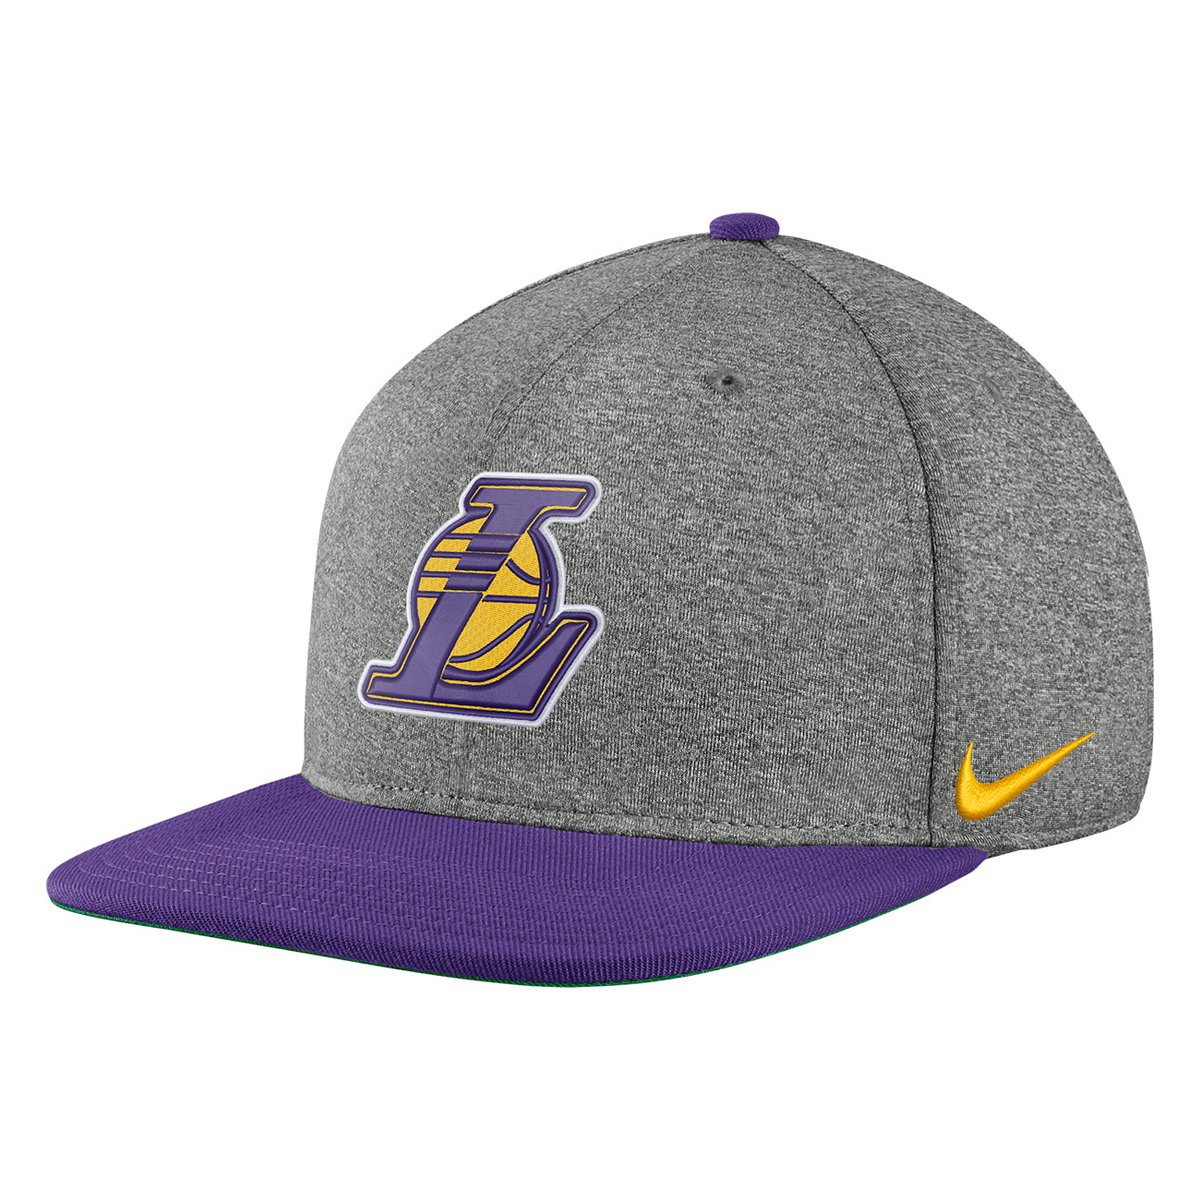 6eb4ac97a16dc Boné Nike NBA Pro Heather Los Angeles Lakers Aba Reta - Compre Agora ...